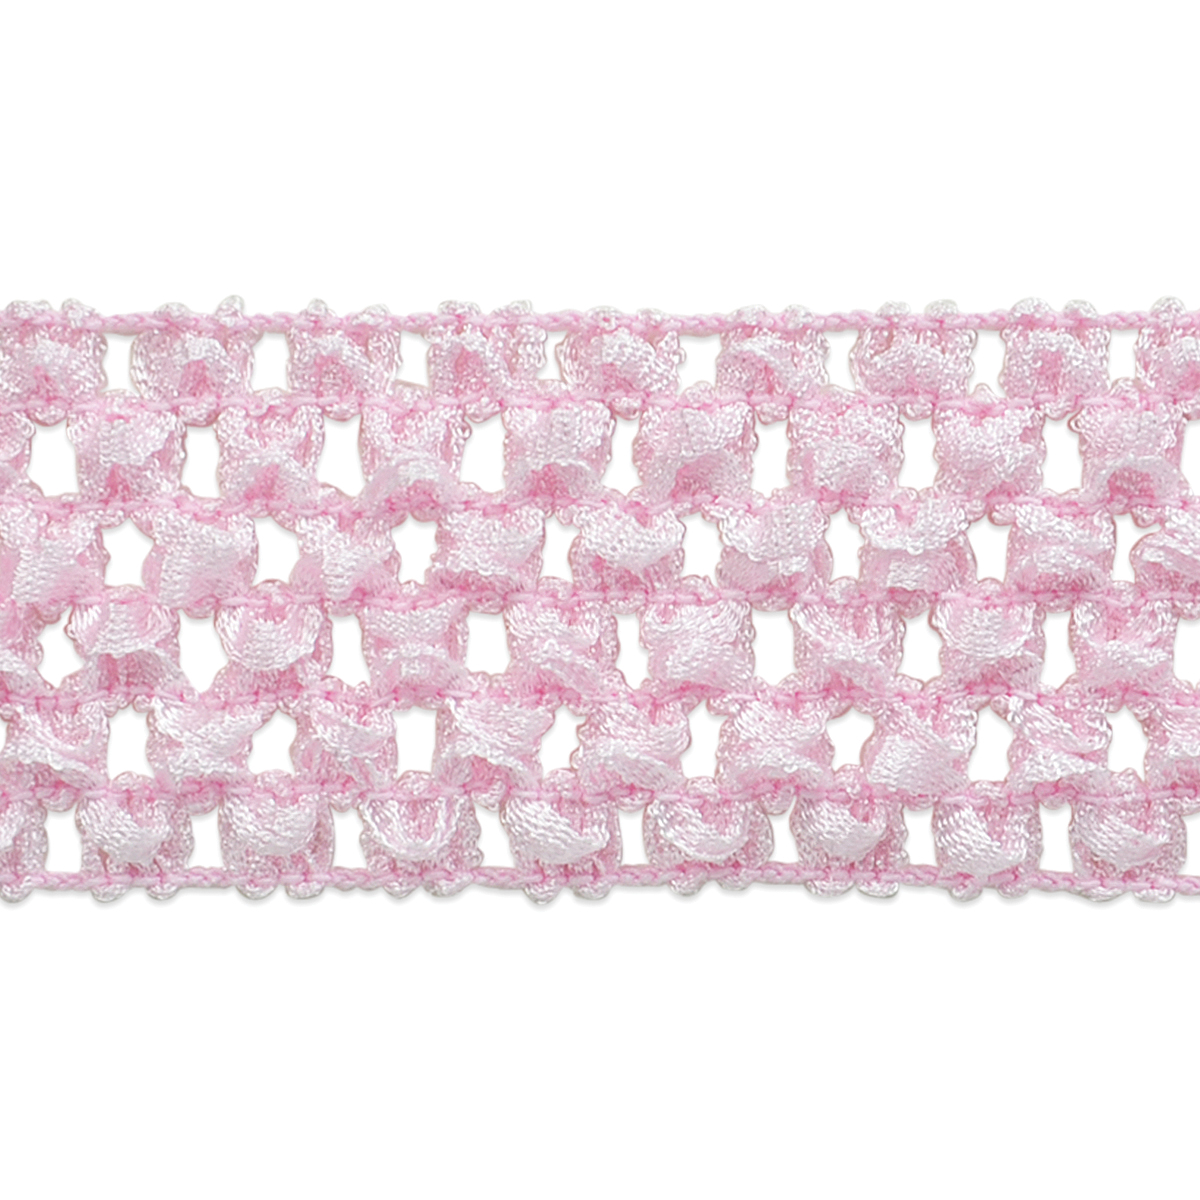 "Crochet Headband Stretch Trim 1-3/4""X20yd-Pink"